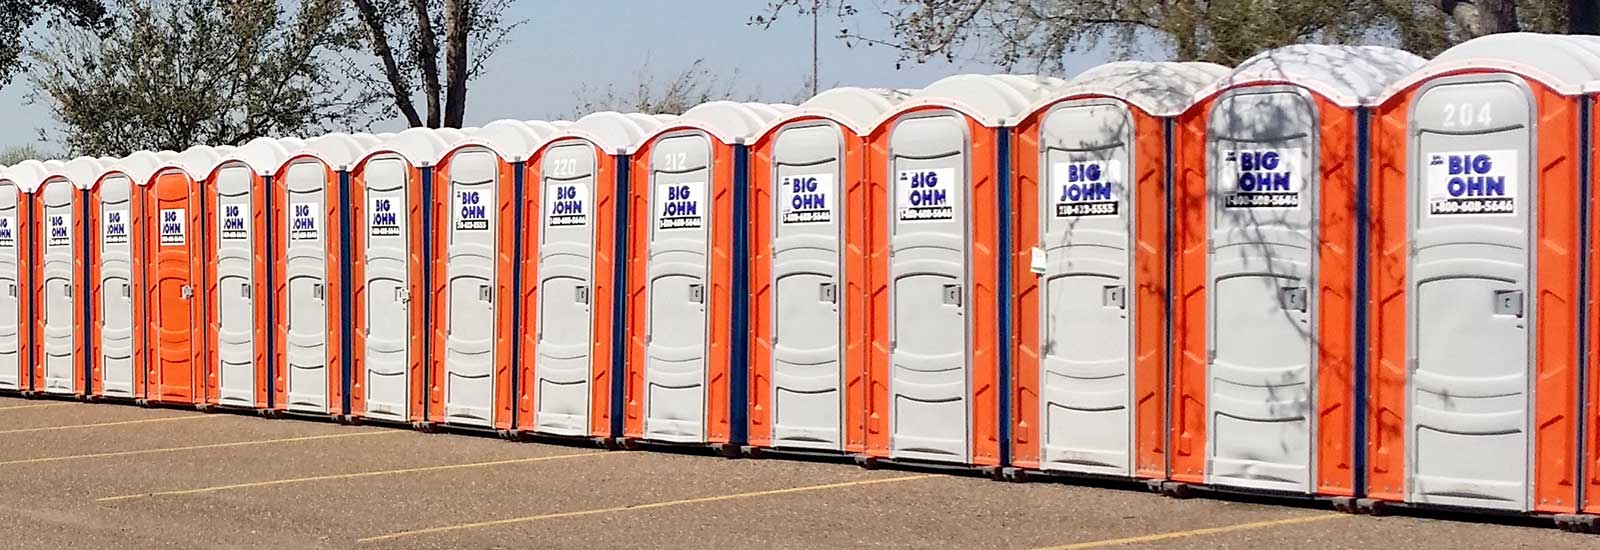 Portable restroom rentals in San Antonio and San Antonio Texas, Edinburg, Harlingen, Brownsville, McAllen TX, New Braunfels, San Marcos, Rio Grande Valley